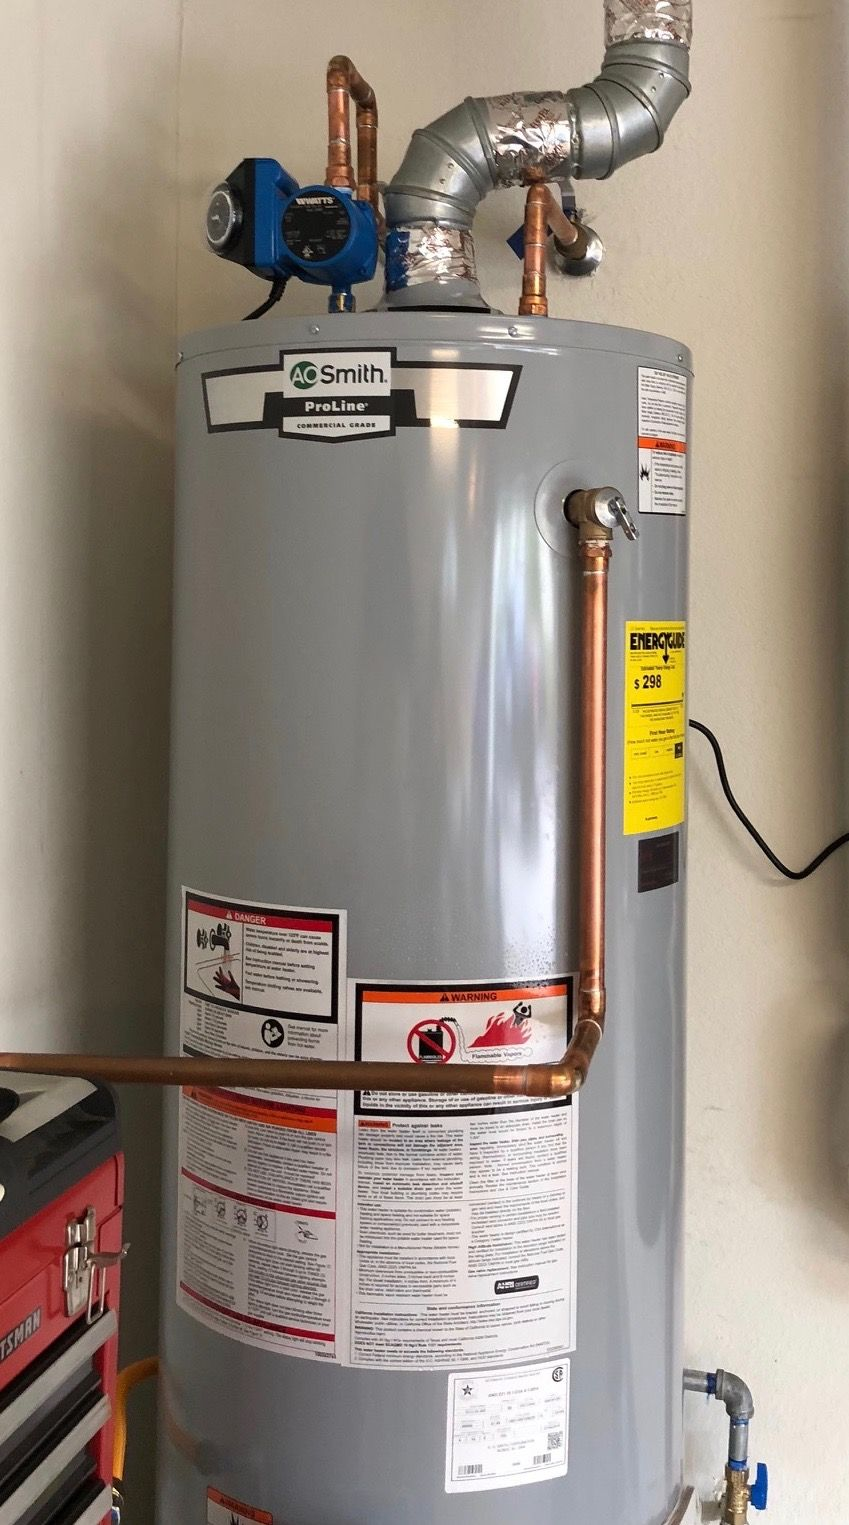 Teco Peoples Gas Rebates For Water Heaters Teco Peoples Gas Is Offering A Rebate For Natural Gas Water He Water Heater Installation Water Heater Water Heating